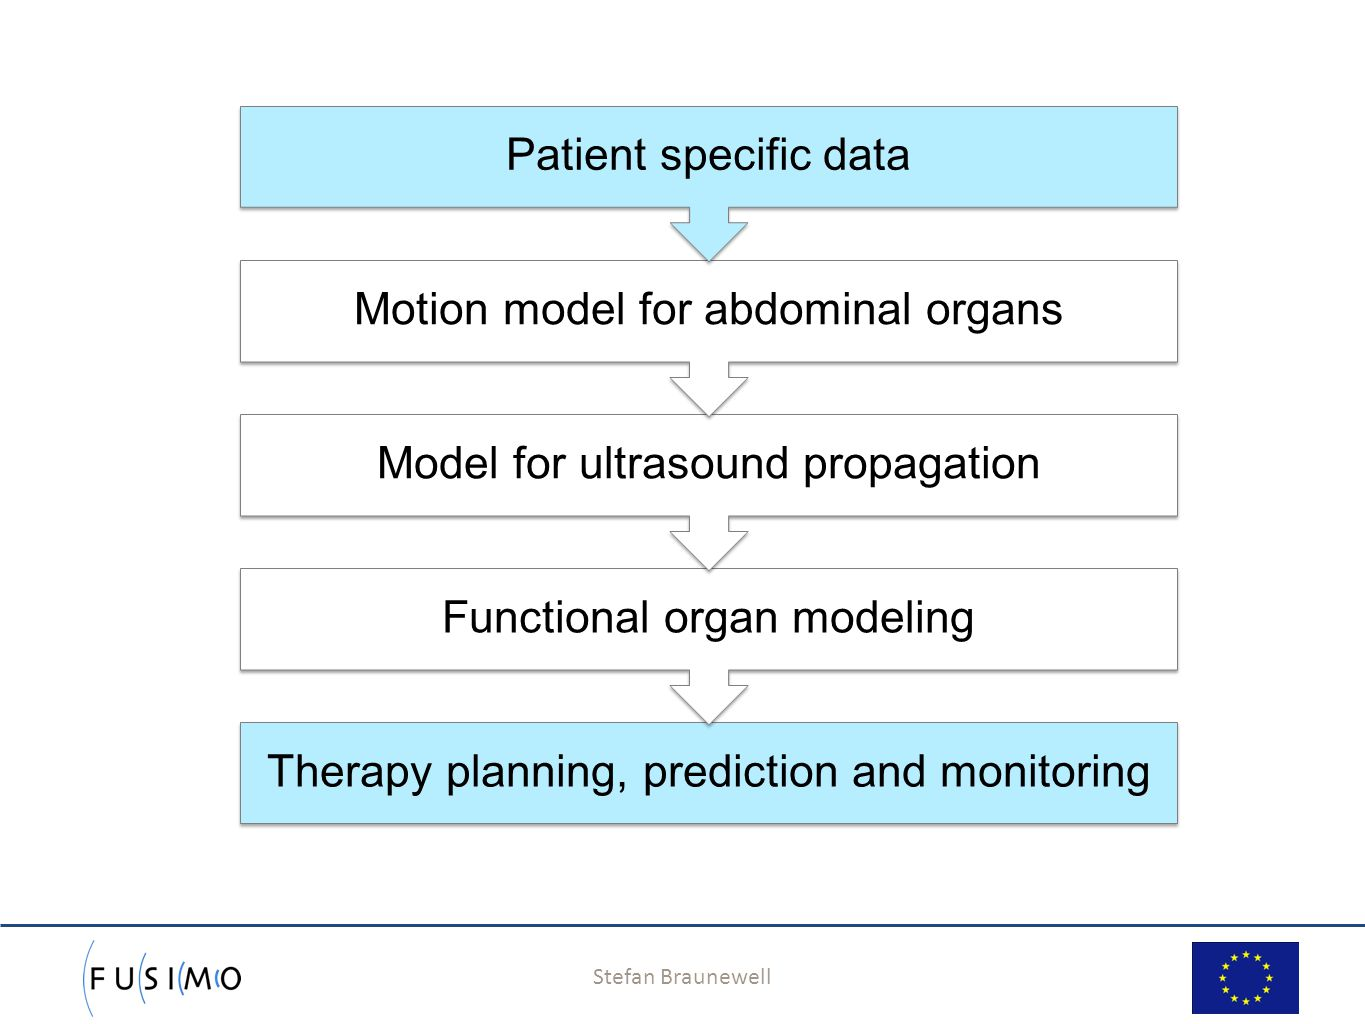 Stefan Braunewell 4 Therapy planning, prediction and monitoring Functional organ modeling Model for ultrasound propagation Motion model for abdominal